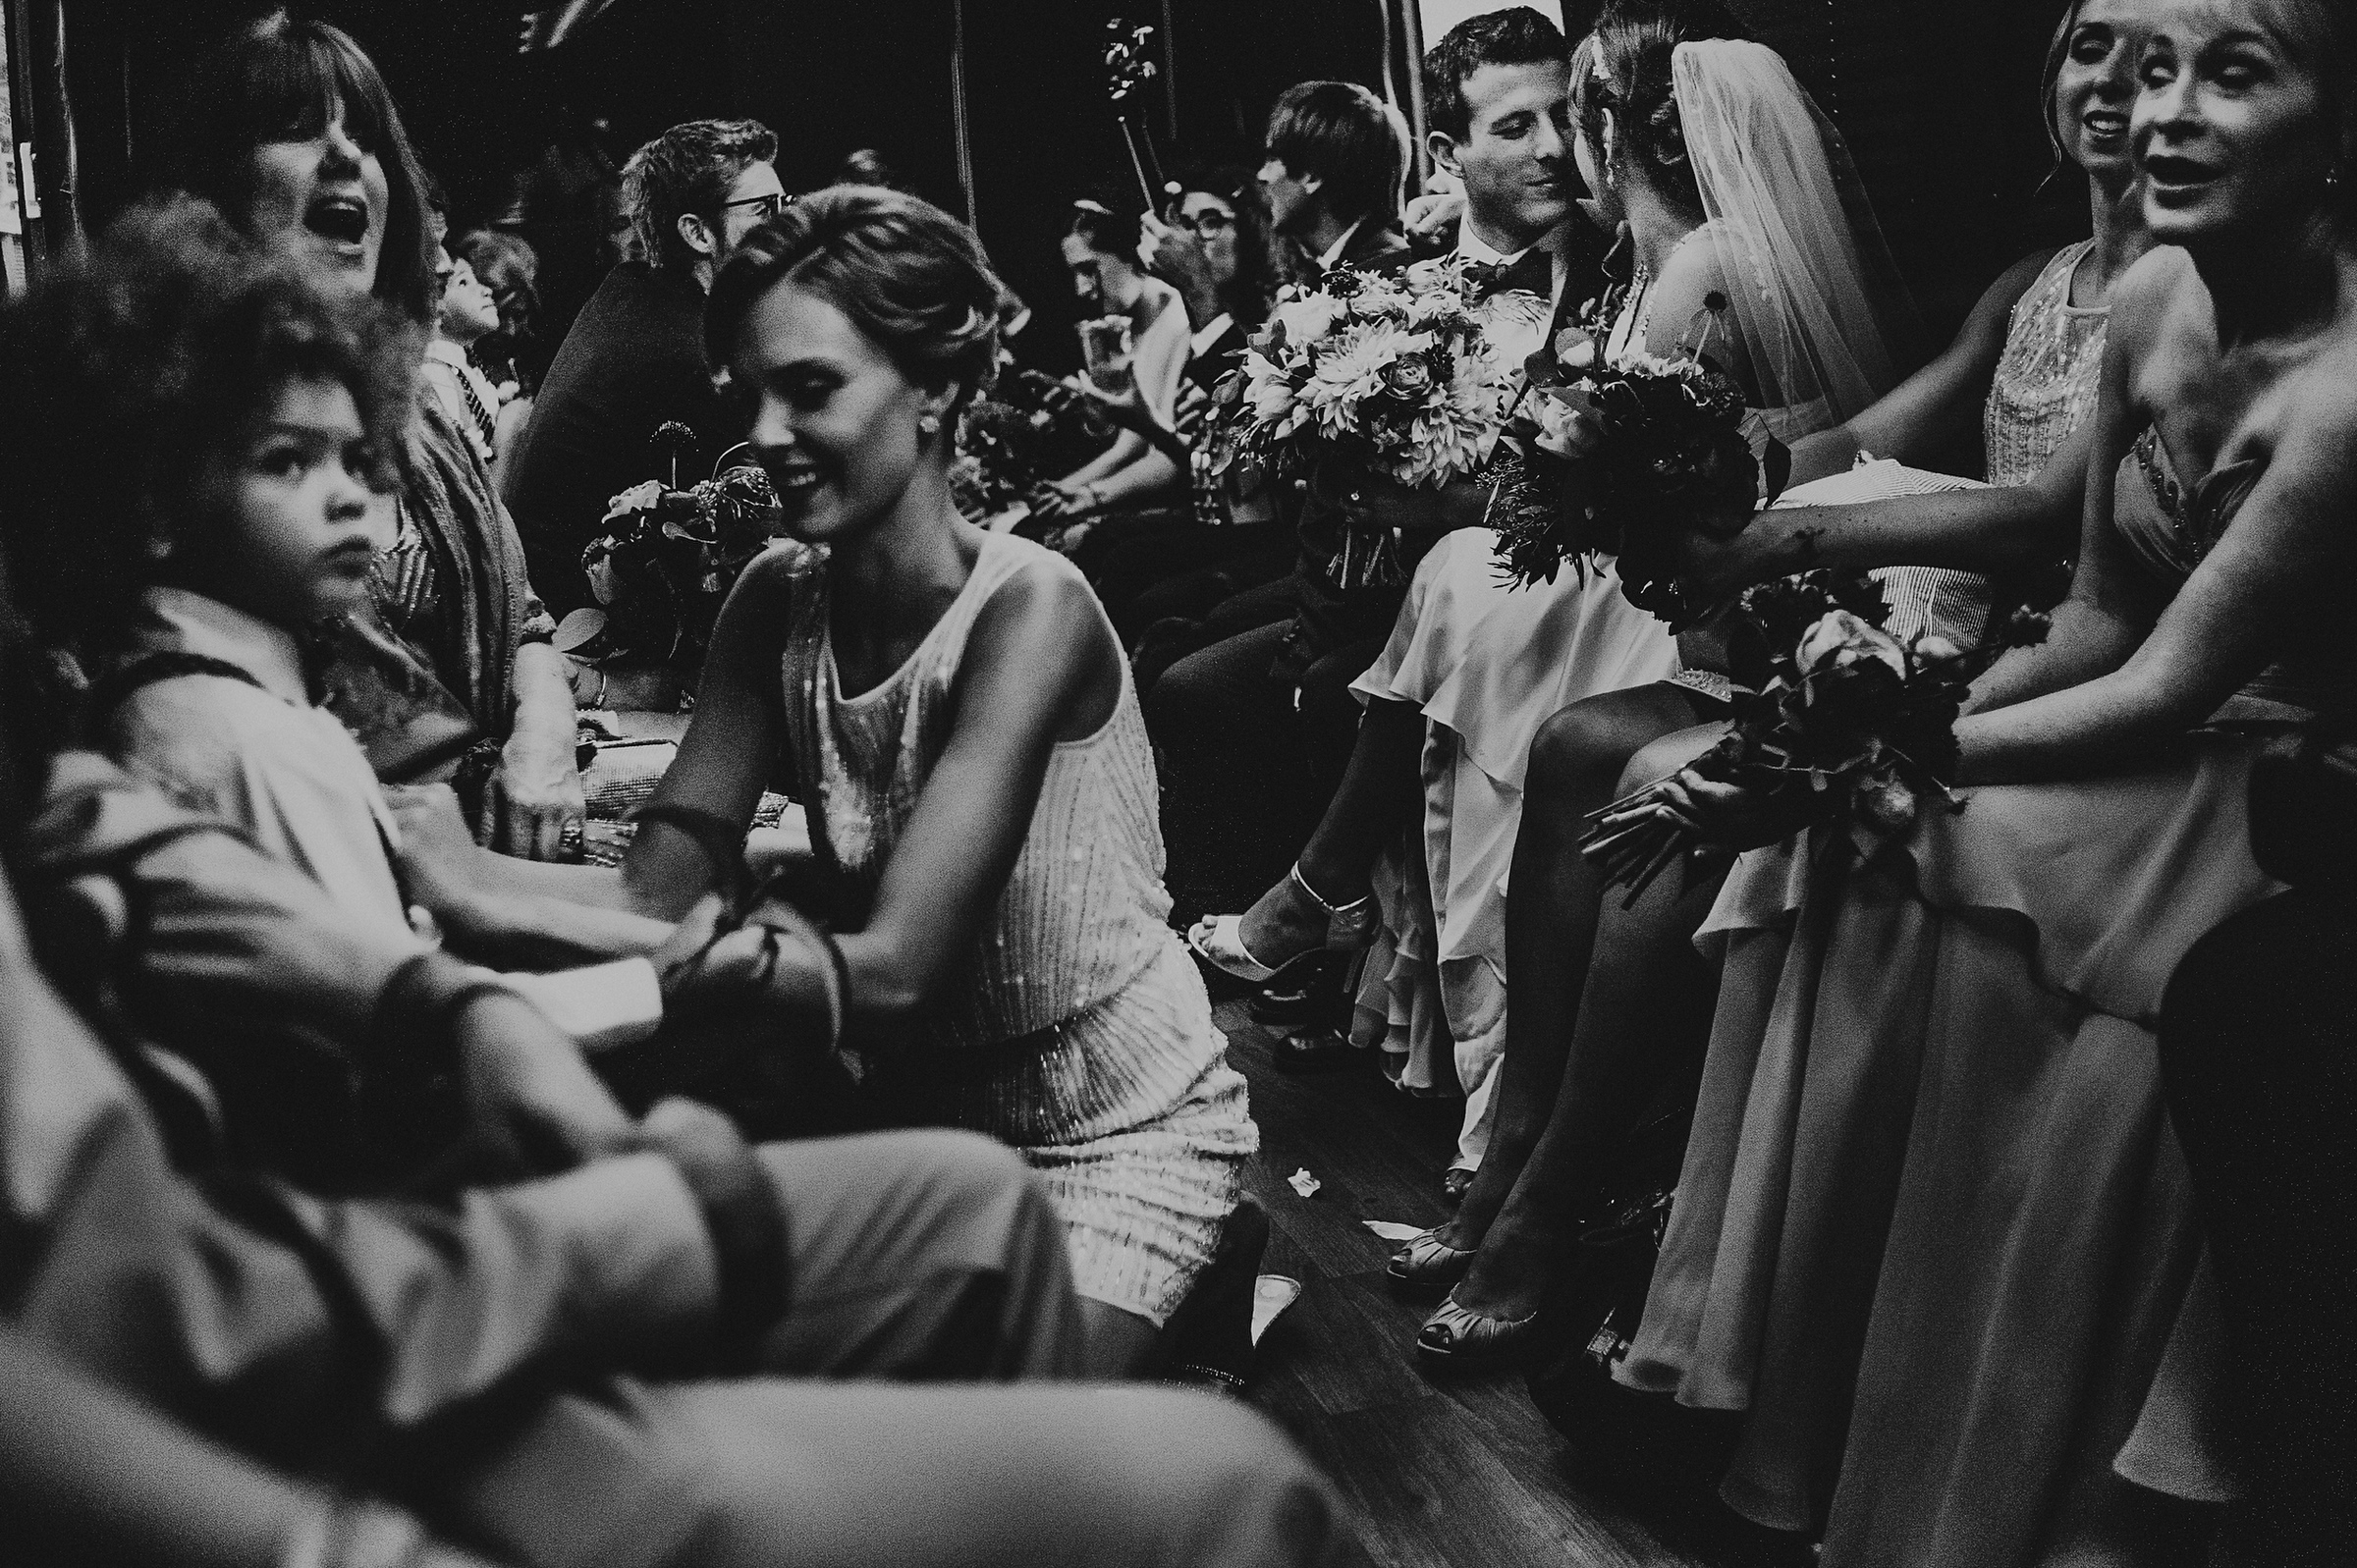 Seated guests candid - photo by Carolina Rivera Photography